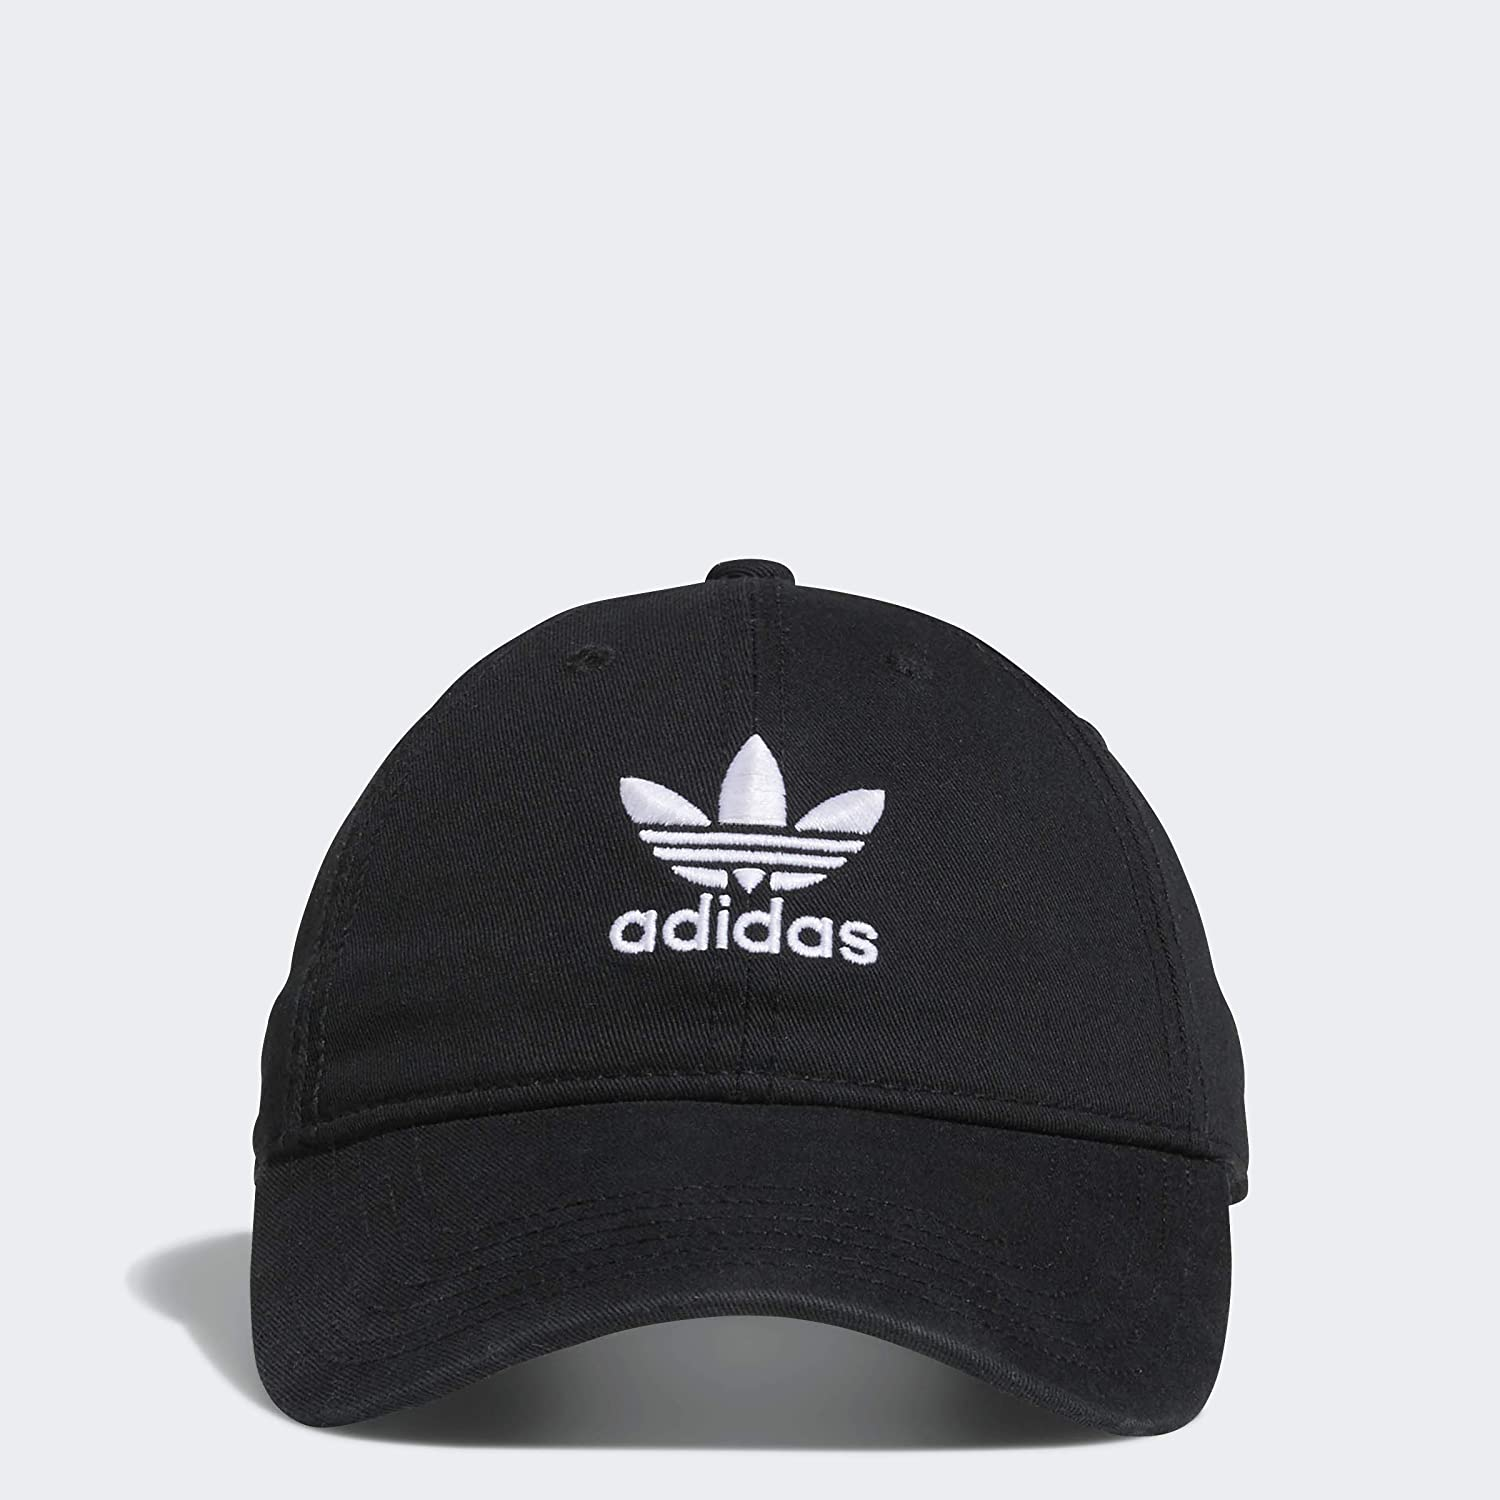 adidas Originals Women's Relaxed Adjustable Strapback Cap, Black/White, One Size: Sports & Outdoors